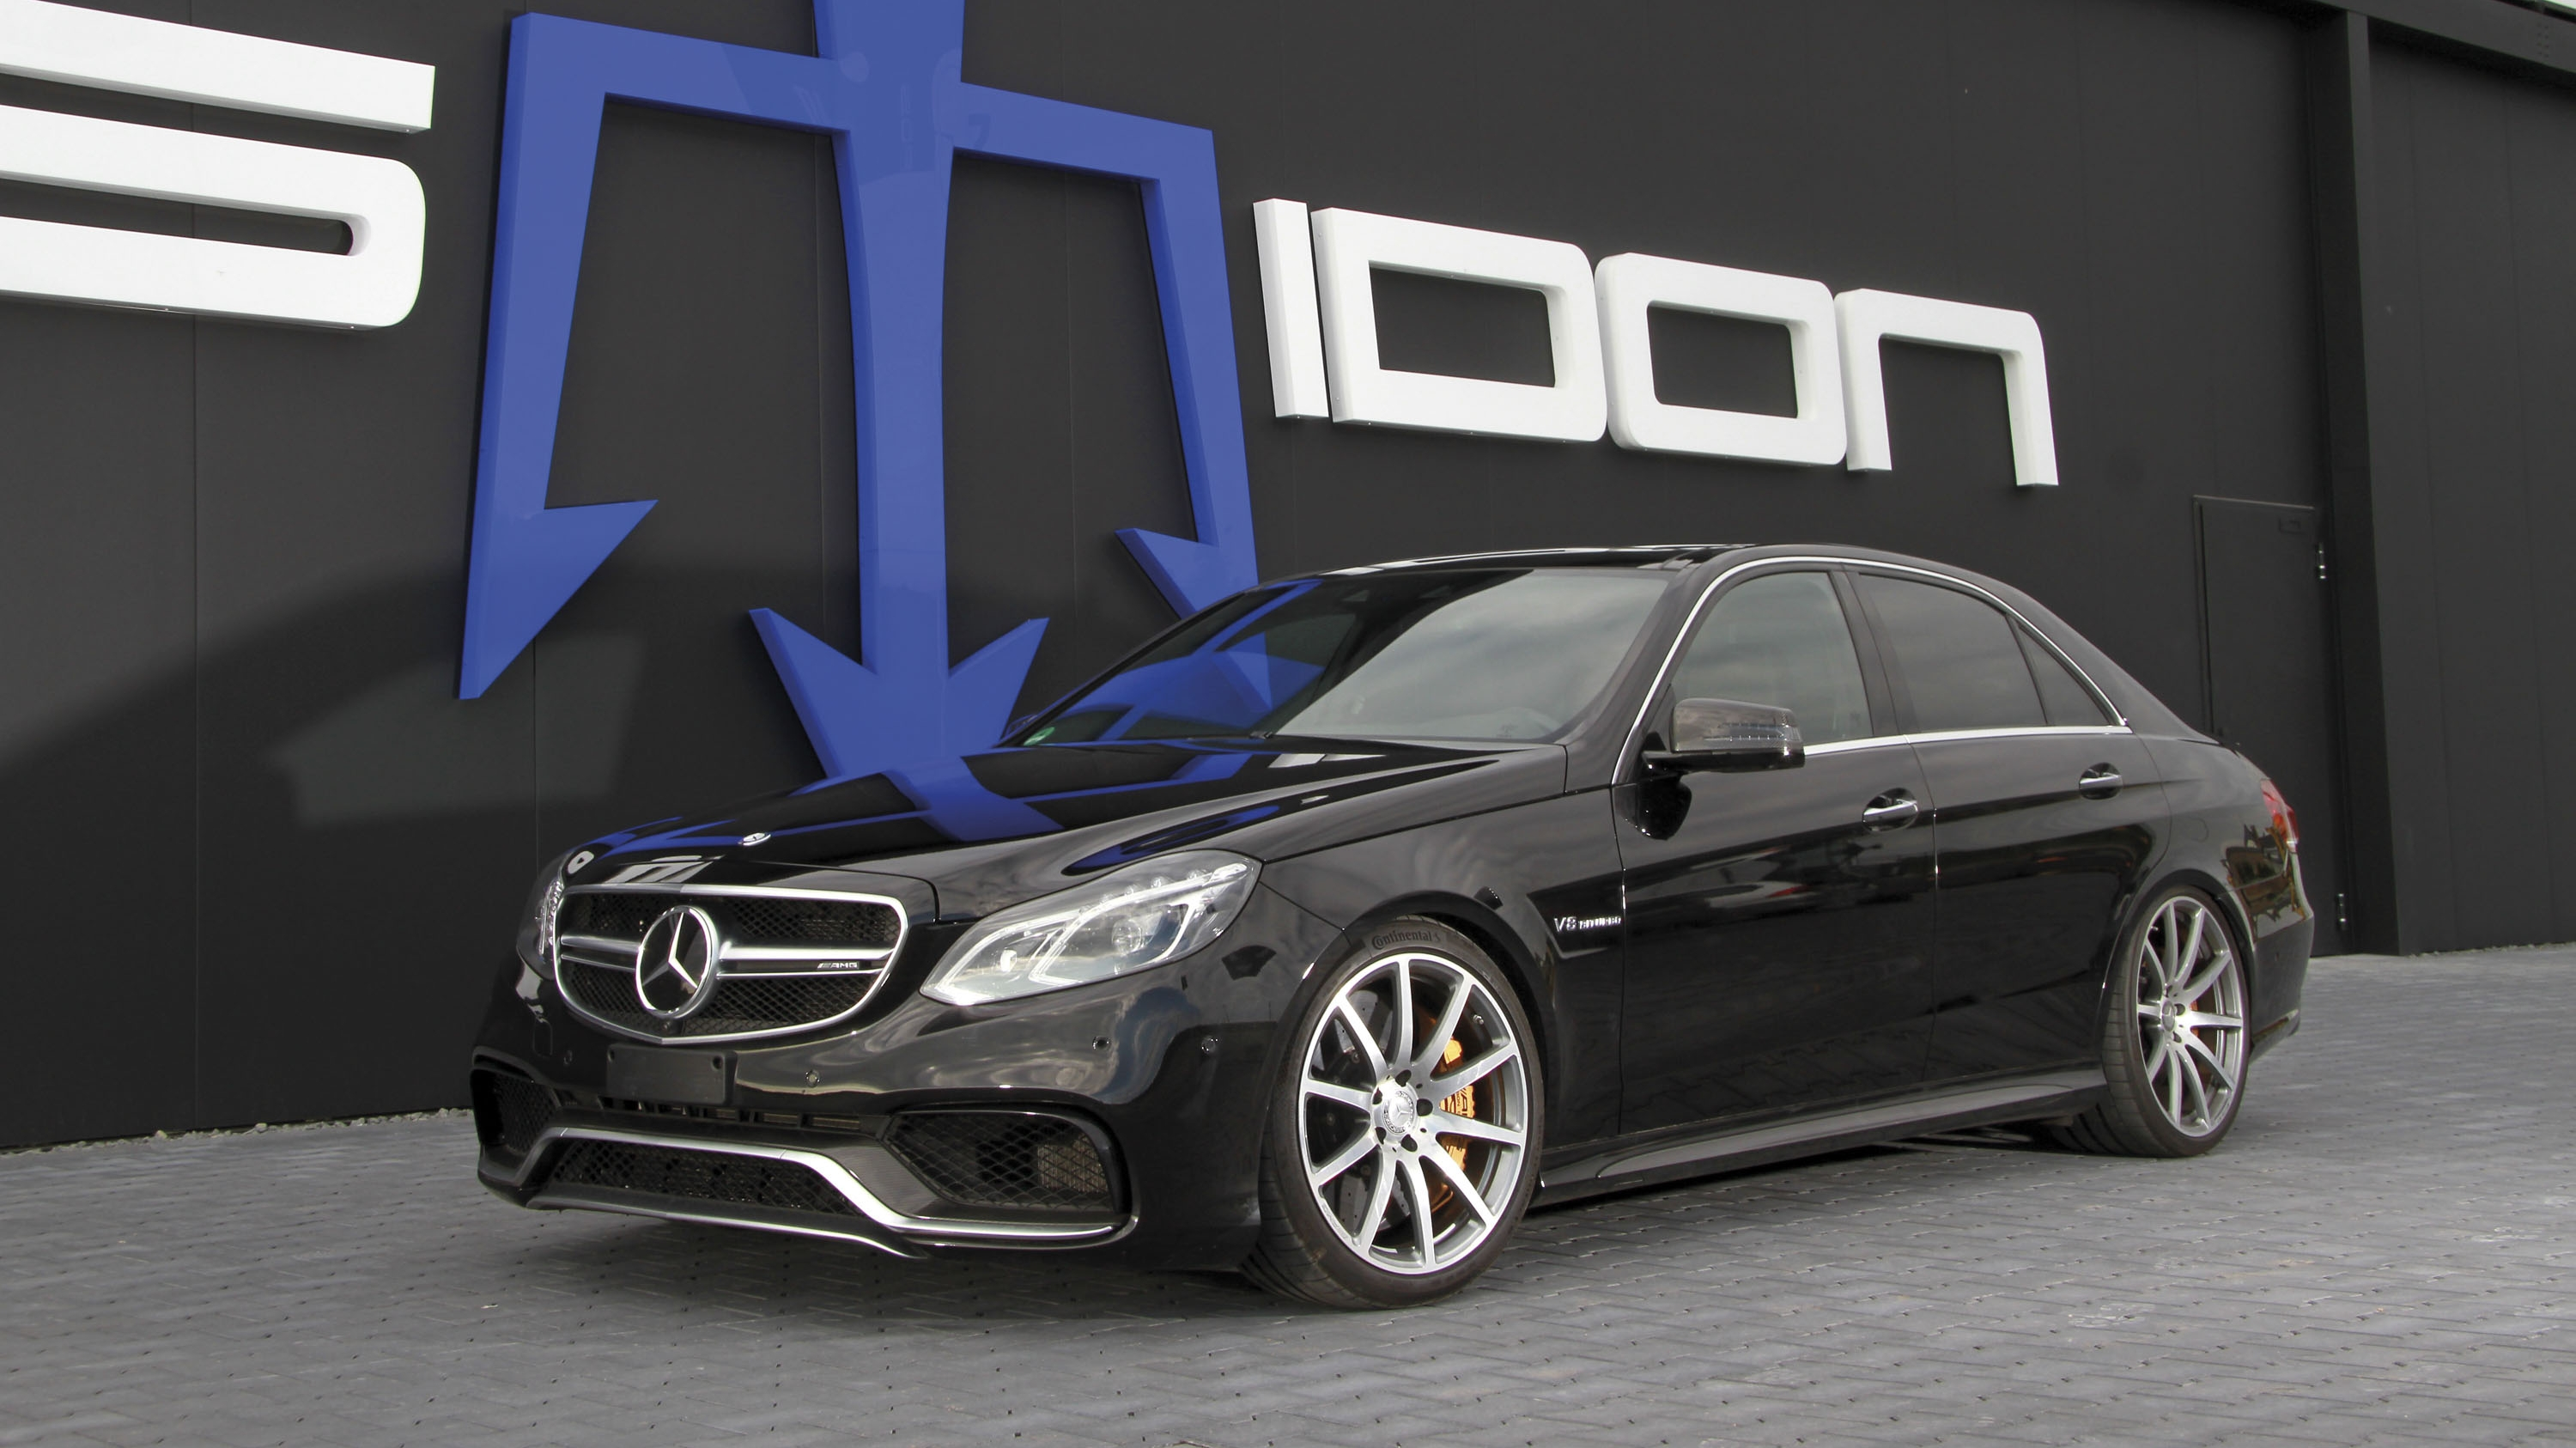 2017 mercedes amg e63 s by posaidon review gallery top. Black Bedroom Furniture Sets. Home Design Ideas